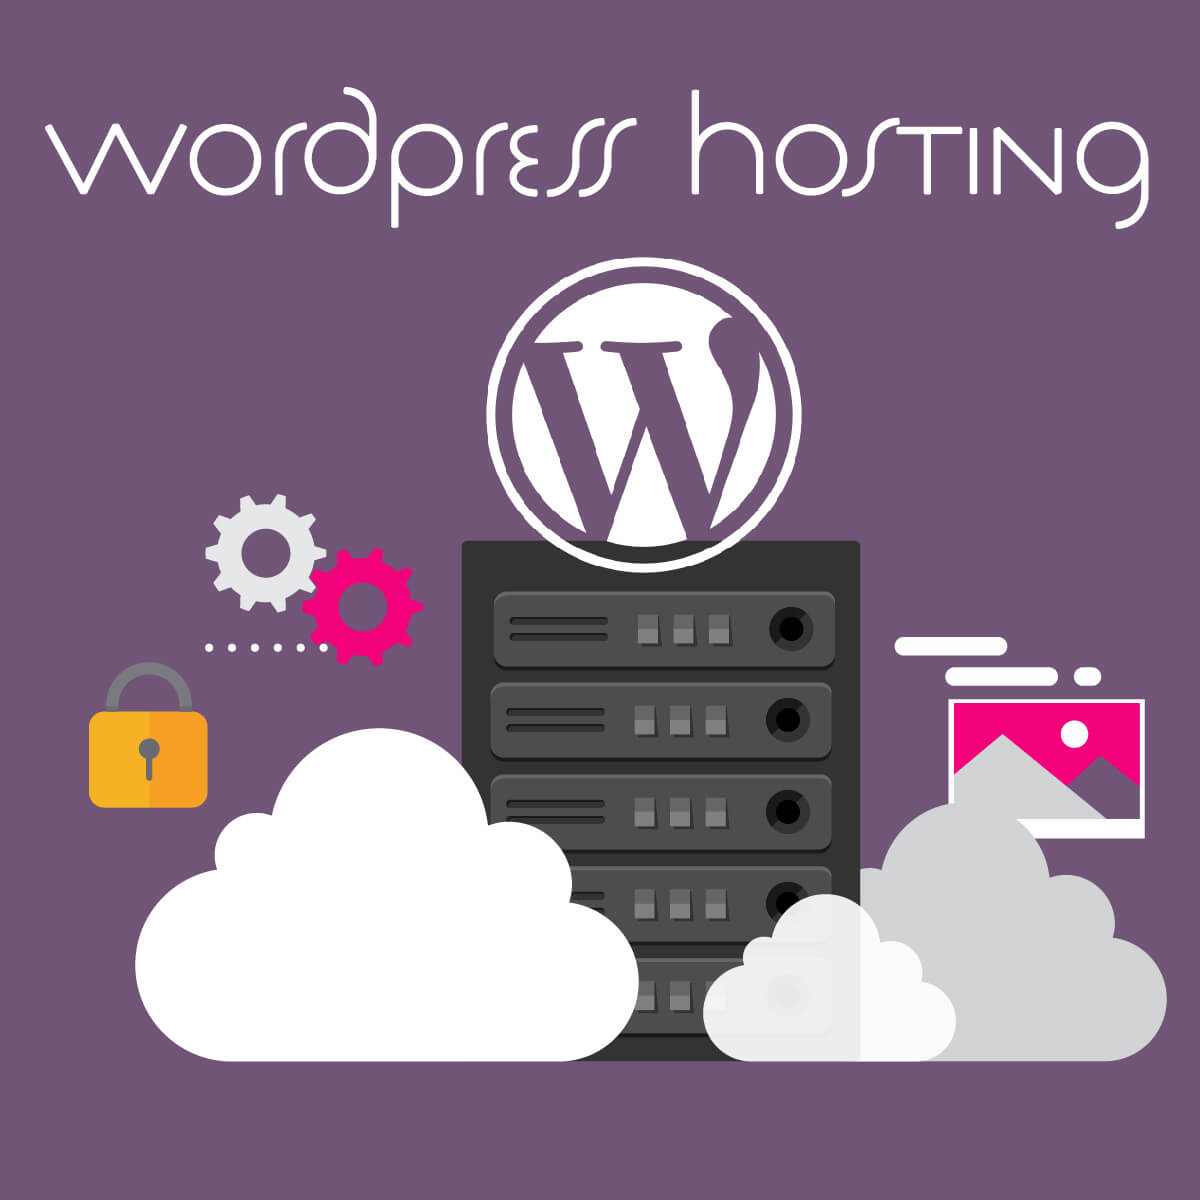 WordPress hosting graphic designed by London Creative Designs - Wordpress agency London